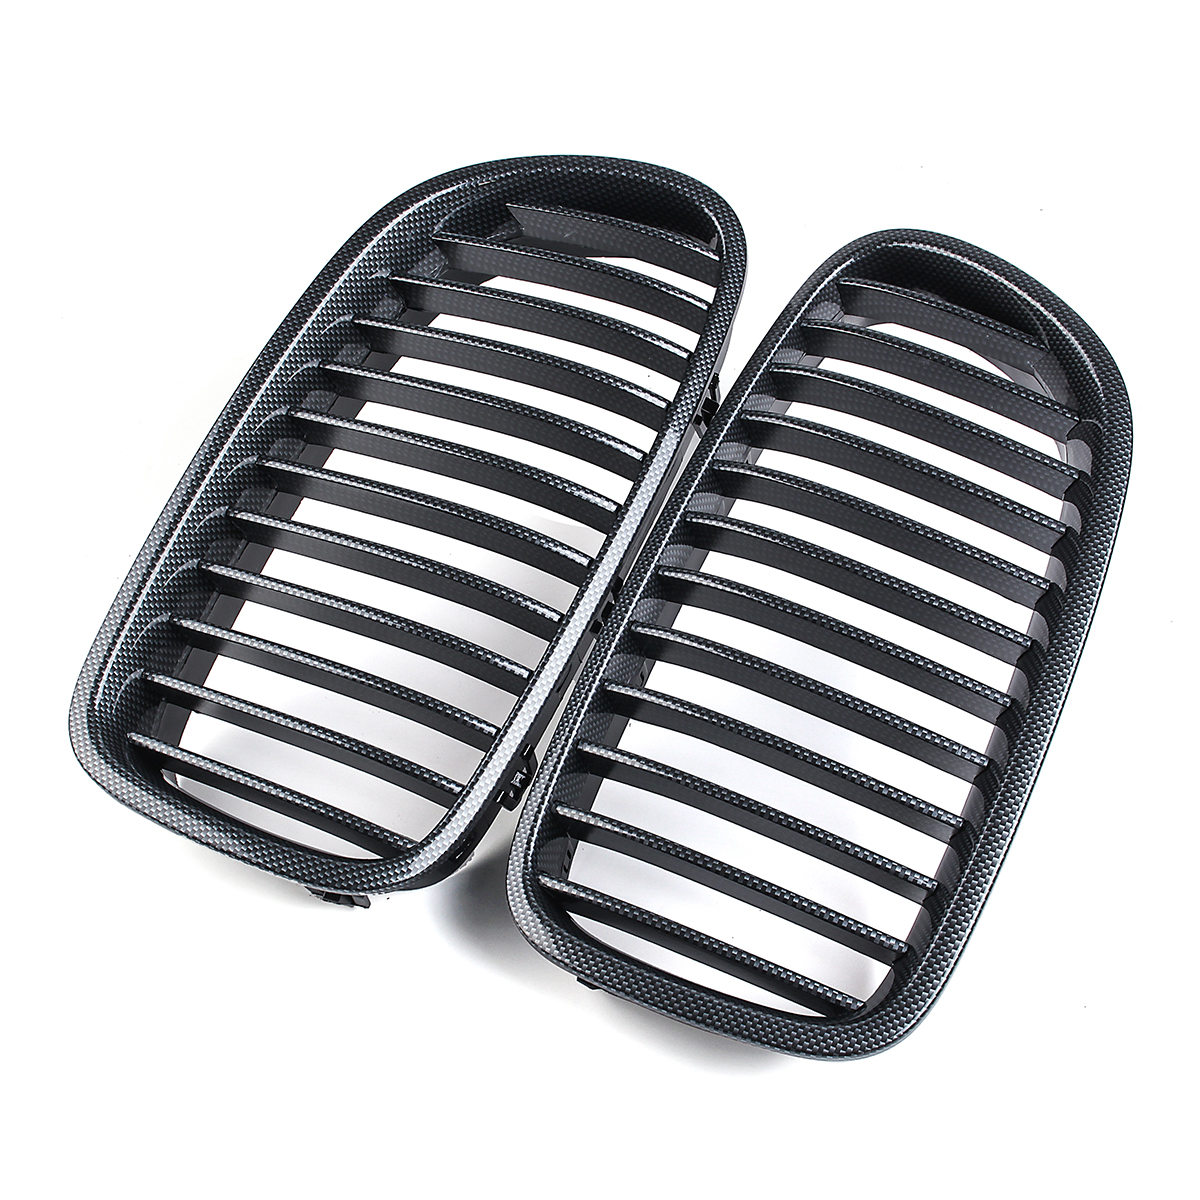 Pair Carbon Fiber ABS Front Kidney Grille For BMW F18 F10 F11 5 Series 2010-2016